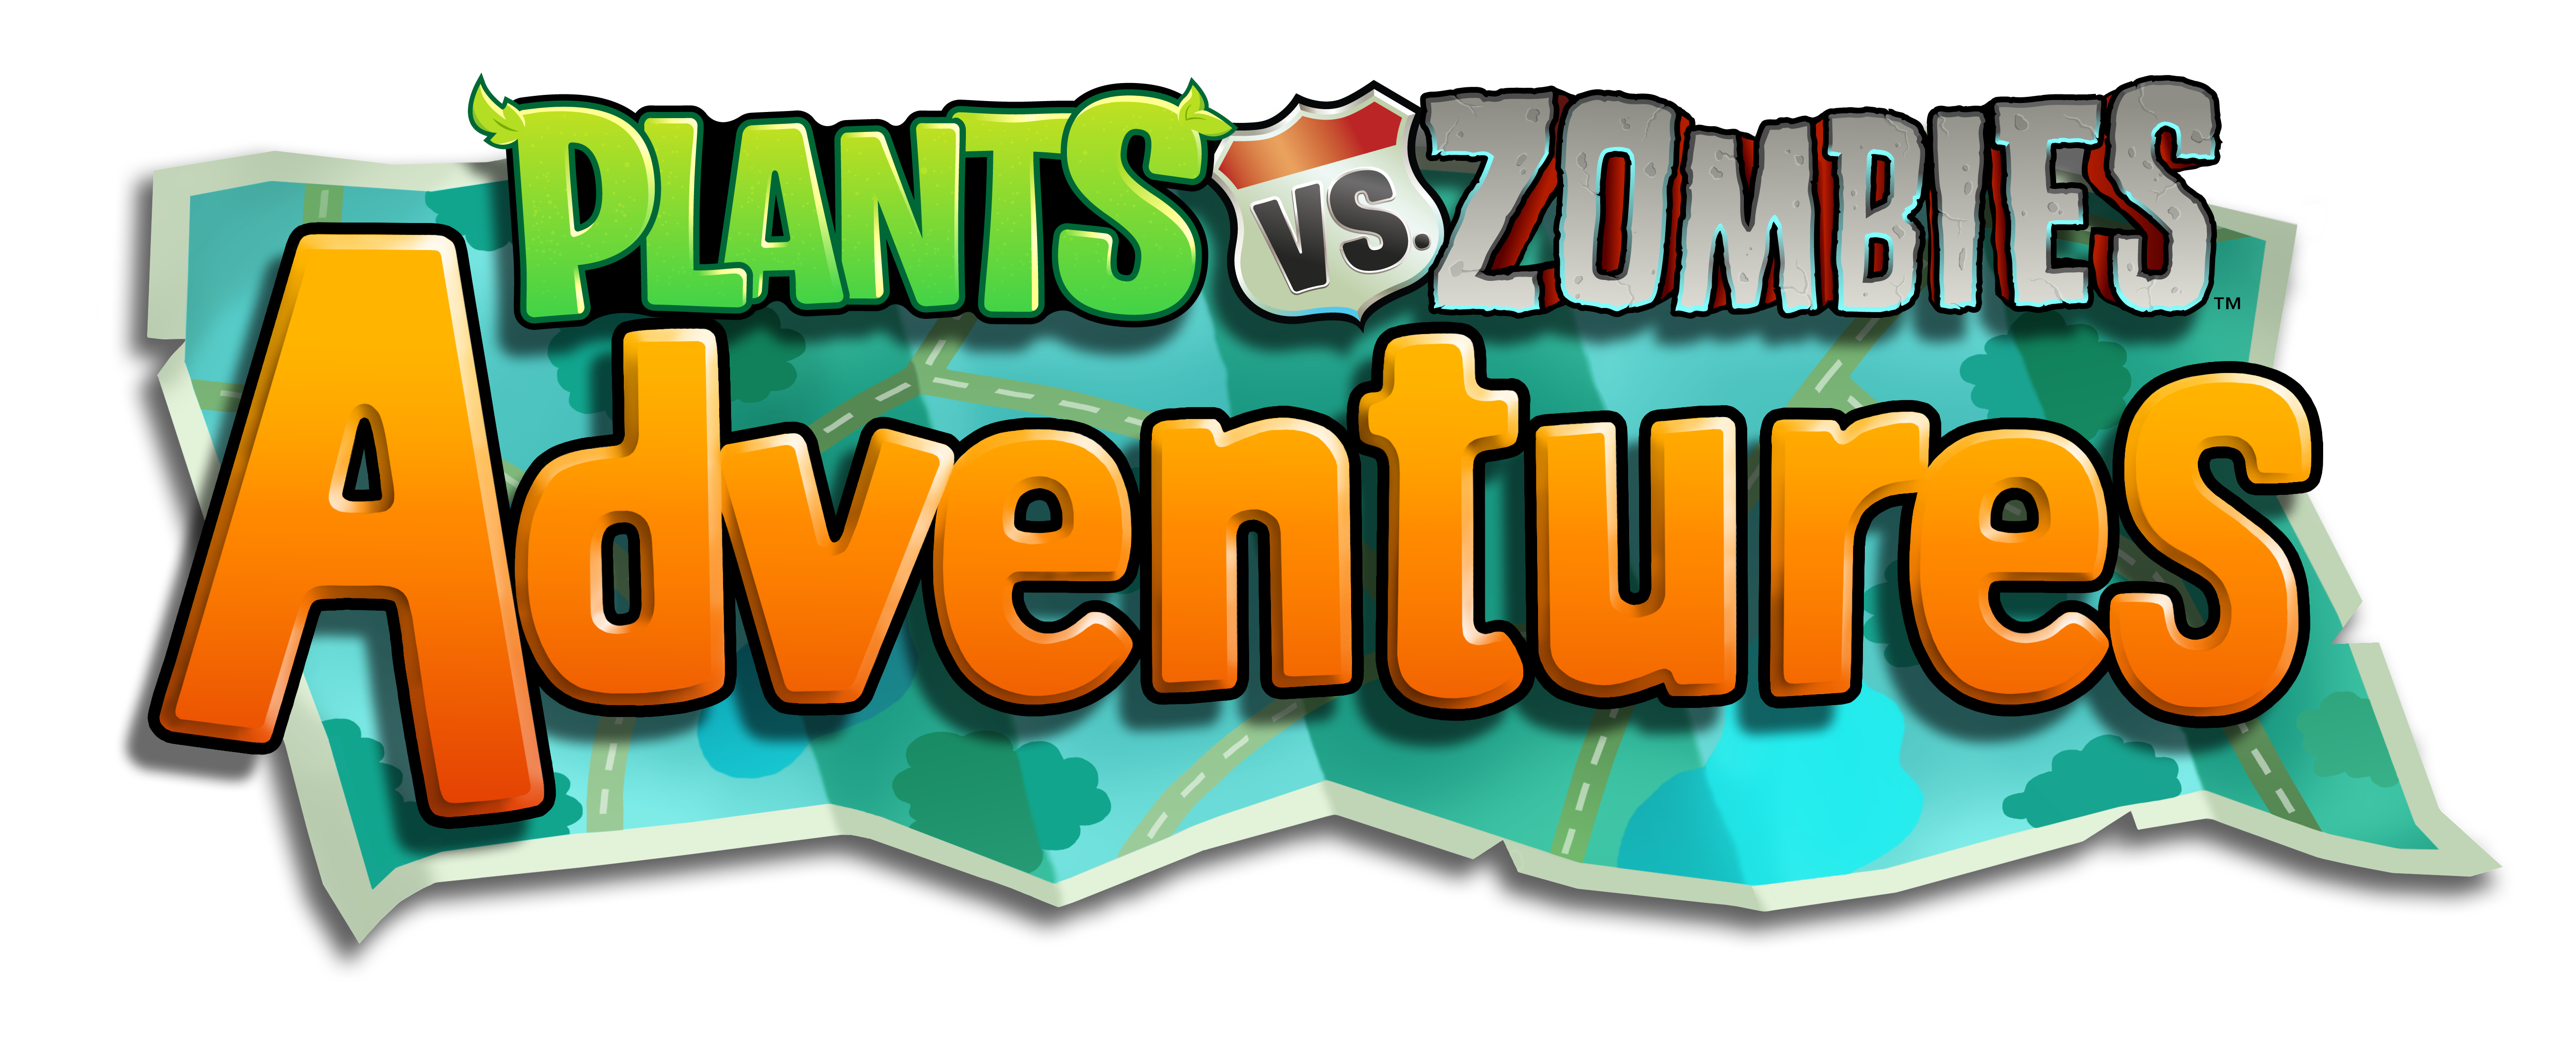 Plants vs zombies 2 logo png. Adventures screenshots images and